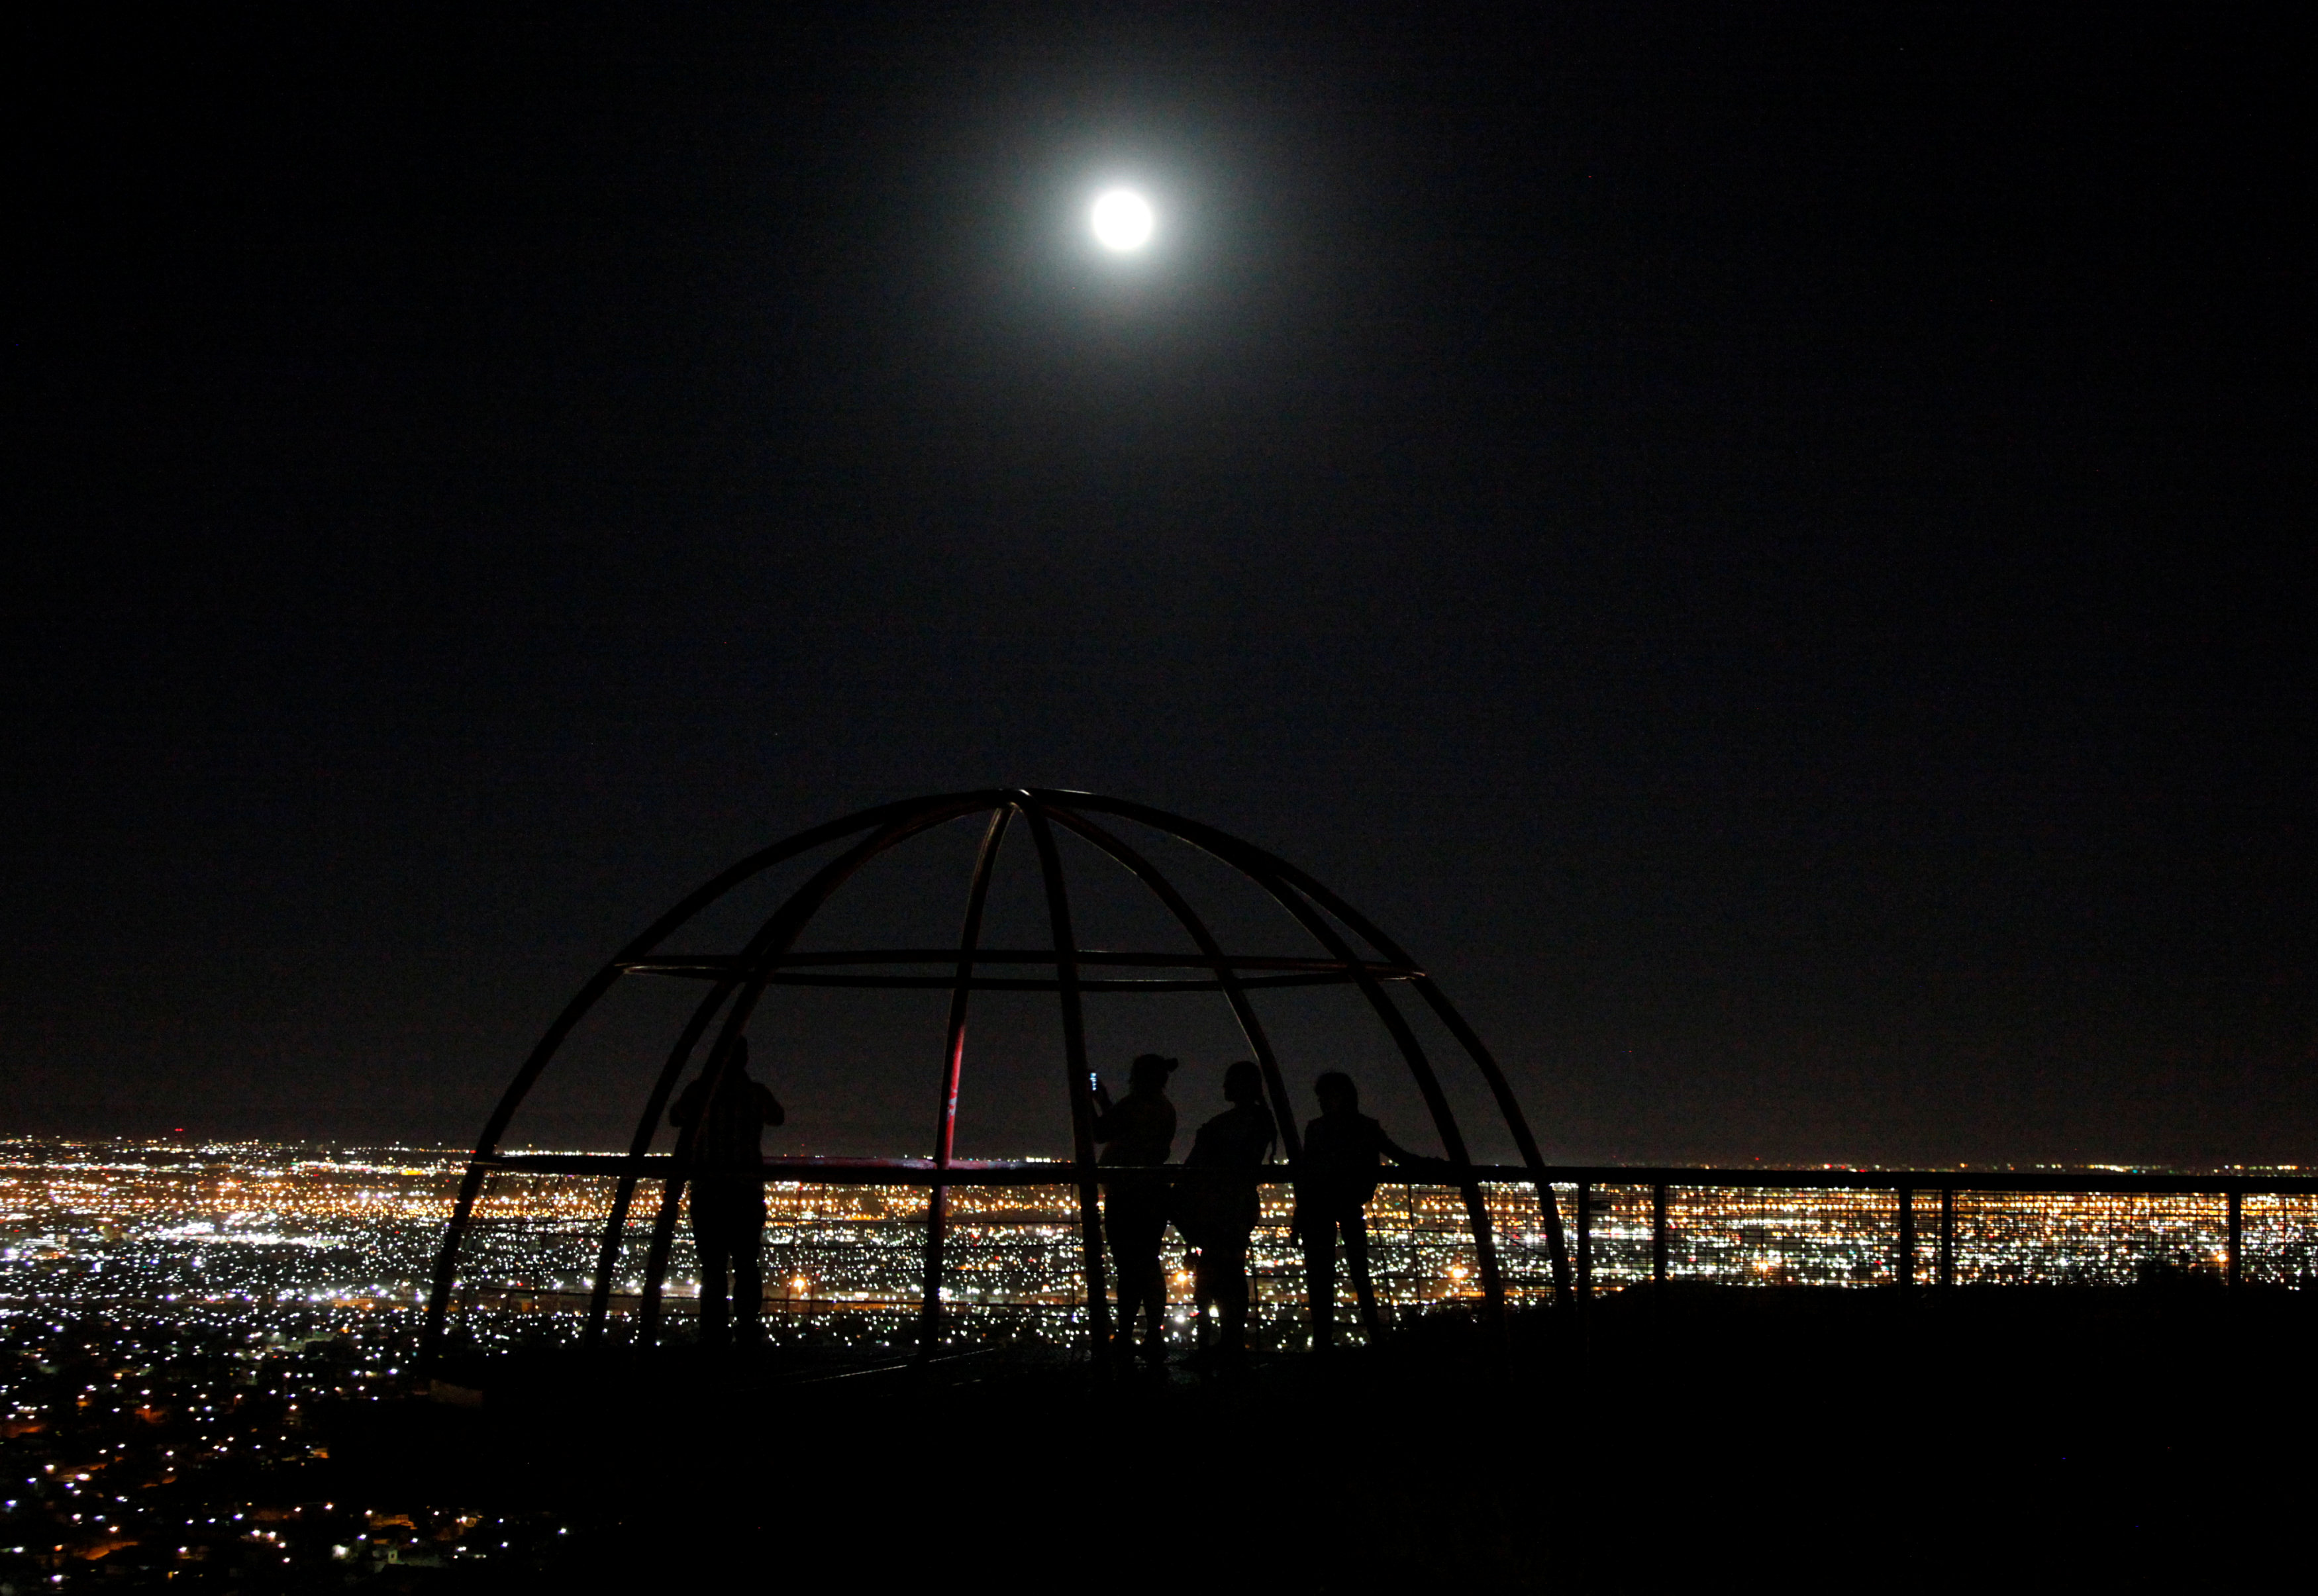 People watch as a supermoon rises over Ciudad Juarez, Mexico, October 16, 2016.